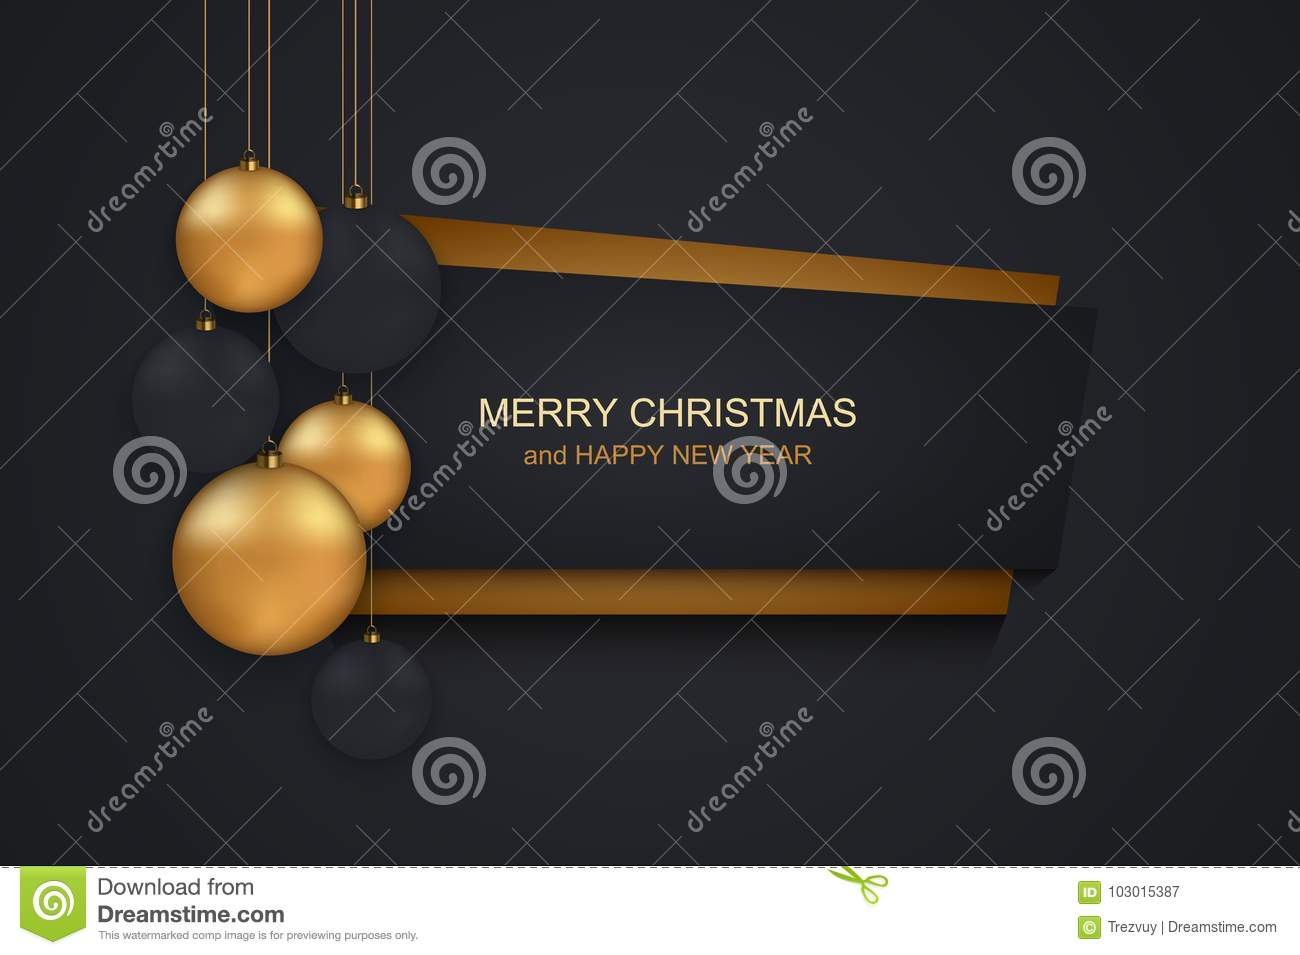 vector modern christmas or 2018 happy new year winter holiday invitation card